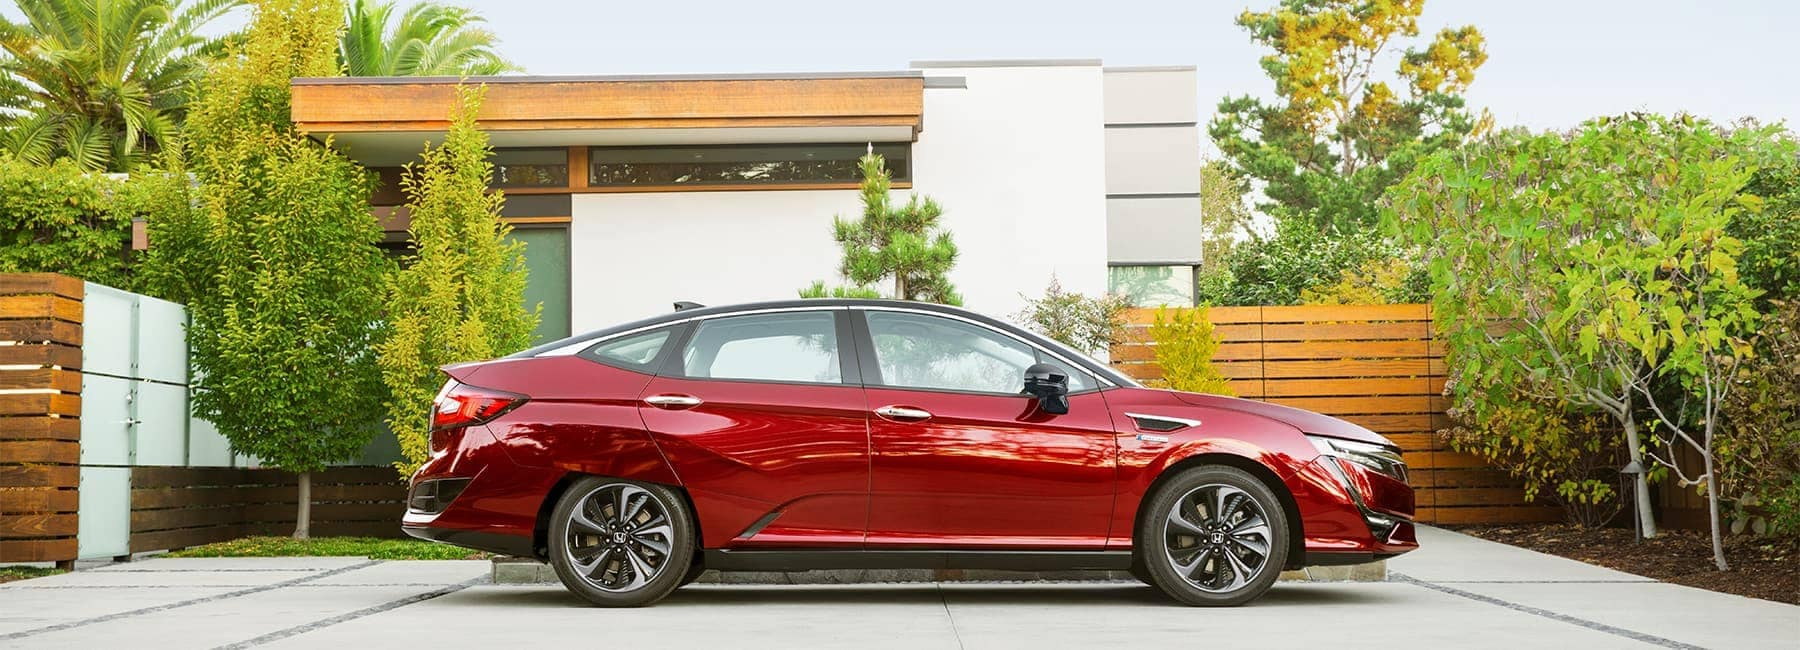 Sideview of a 2020 Red Honda Clarity Parked in a very nice Garage